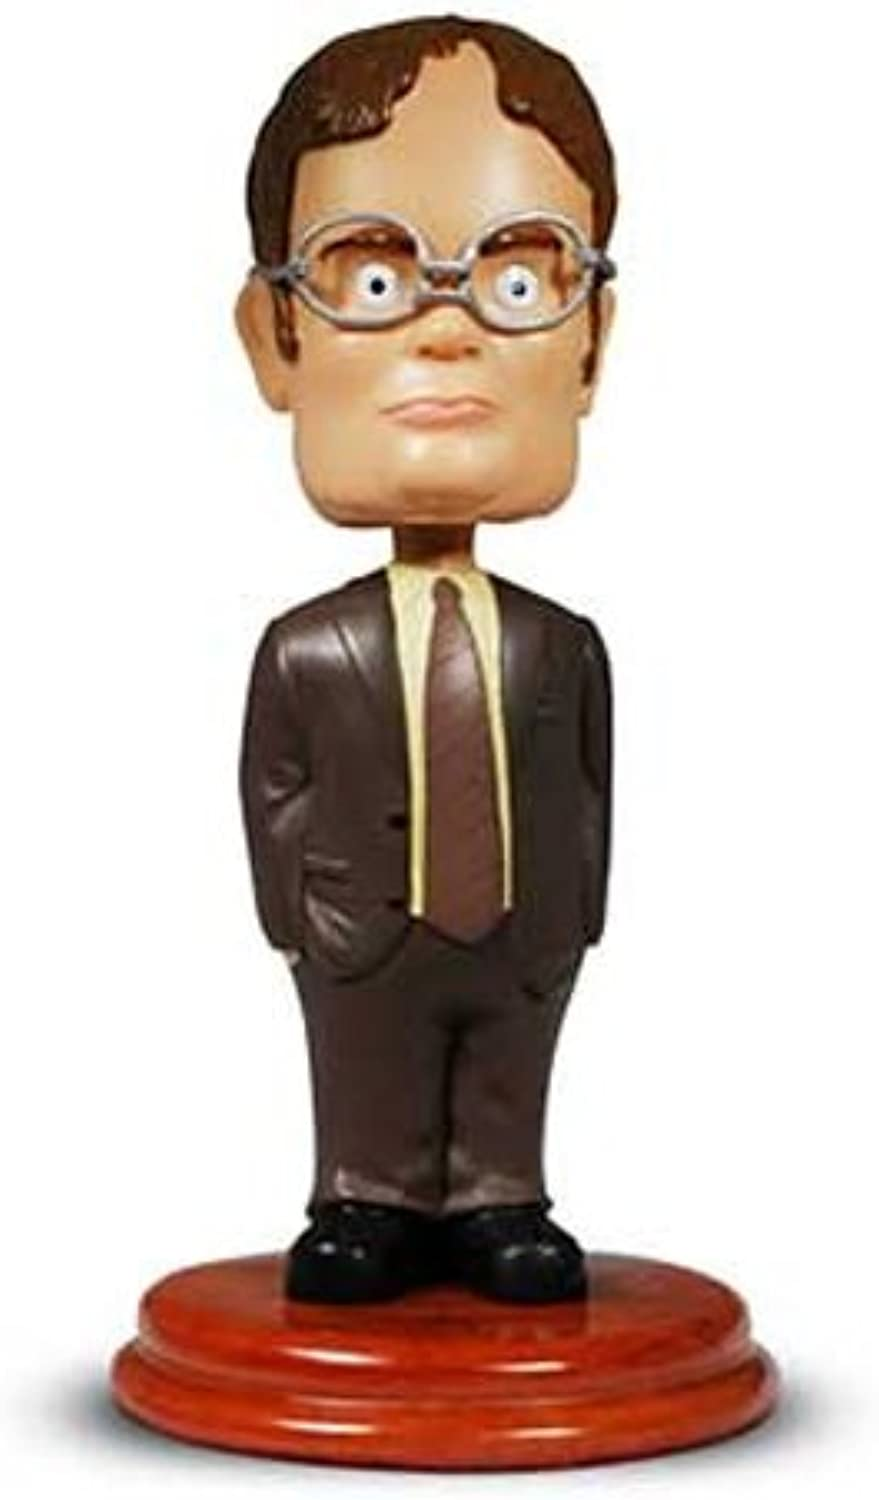 NBC The Office  Dwight Schrute Bobblehead